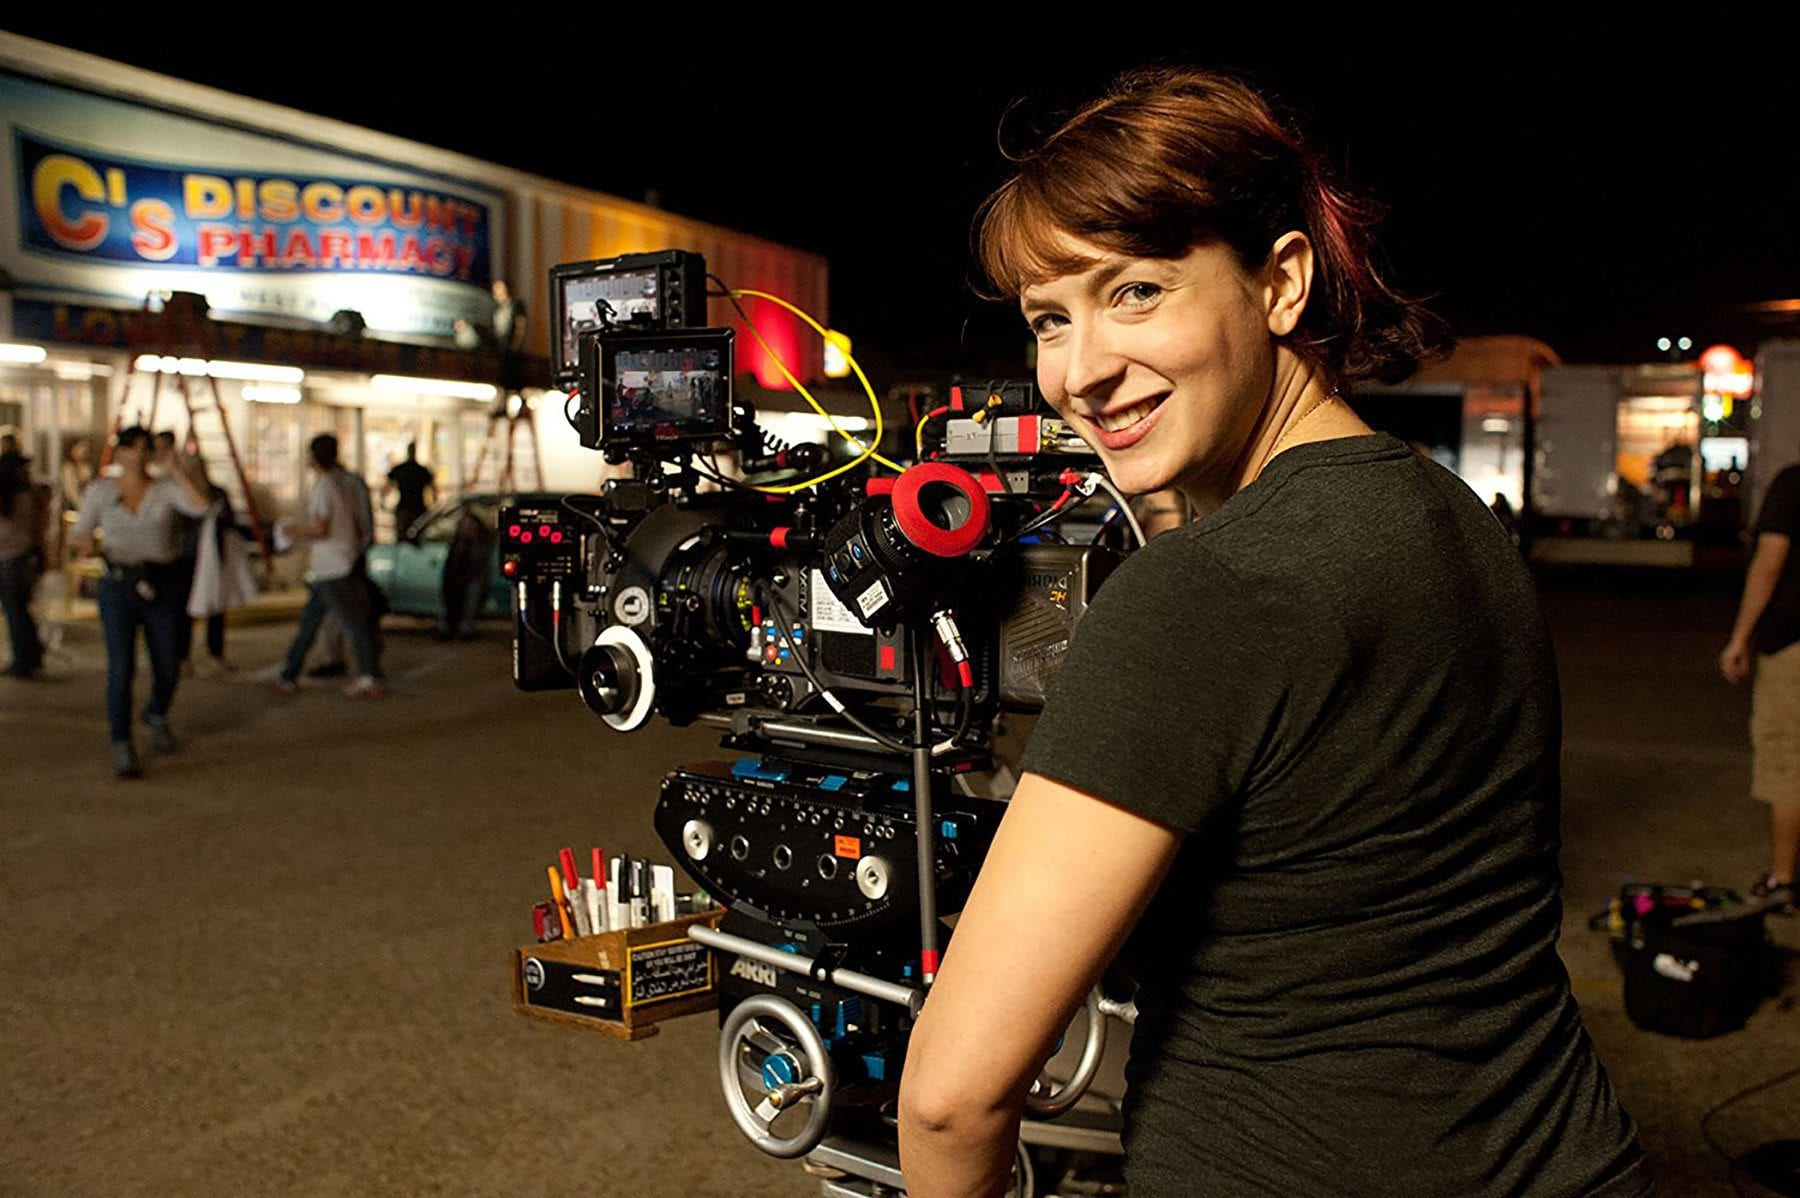 Oscar winner Diablo Cody commits to multi-year development deal with Warner Bros. Television for 'Raised by Wolves' series.